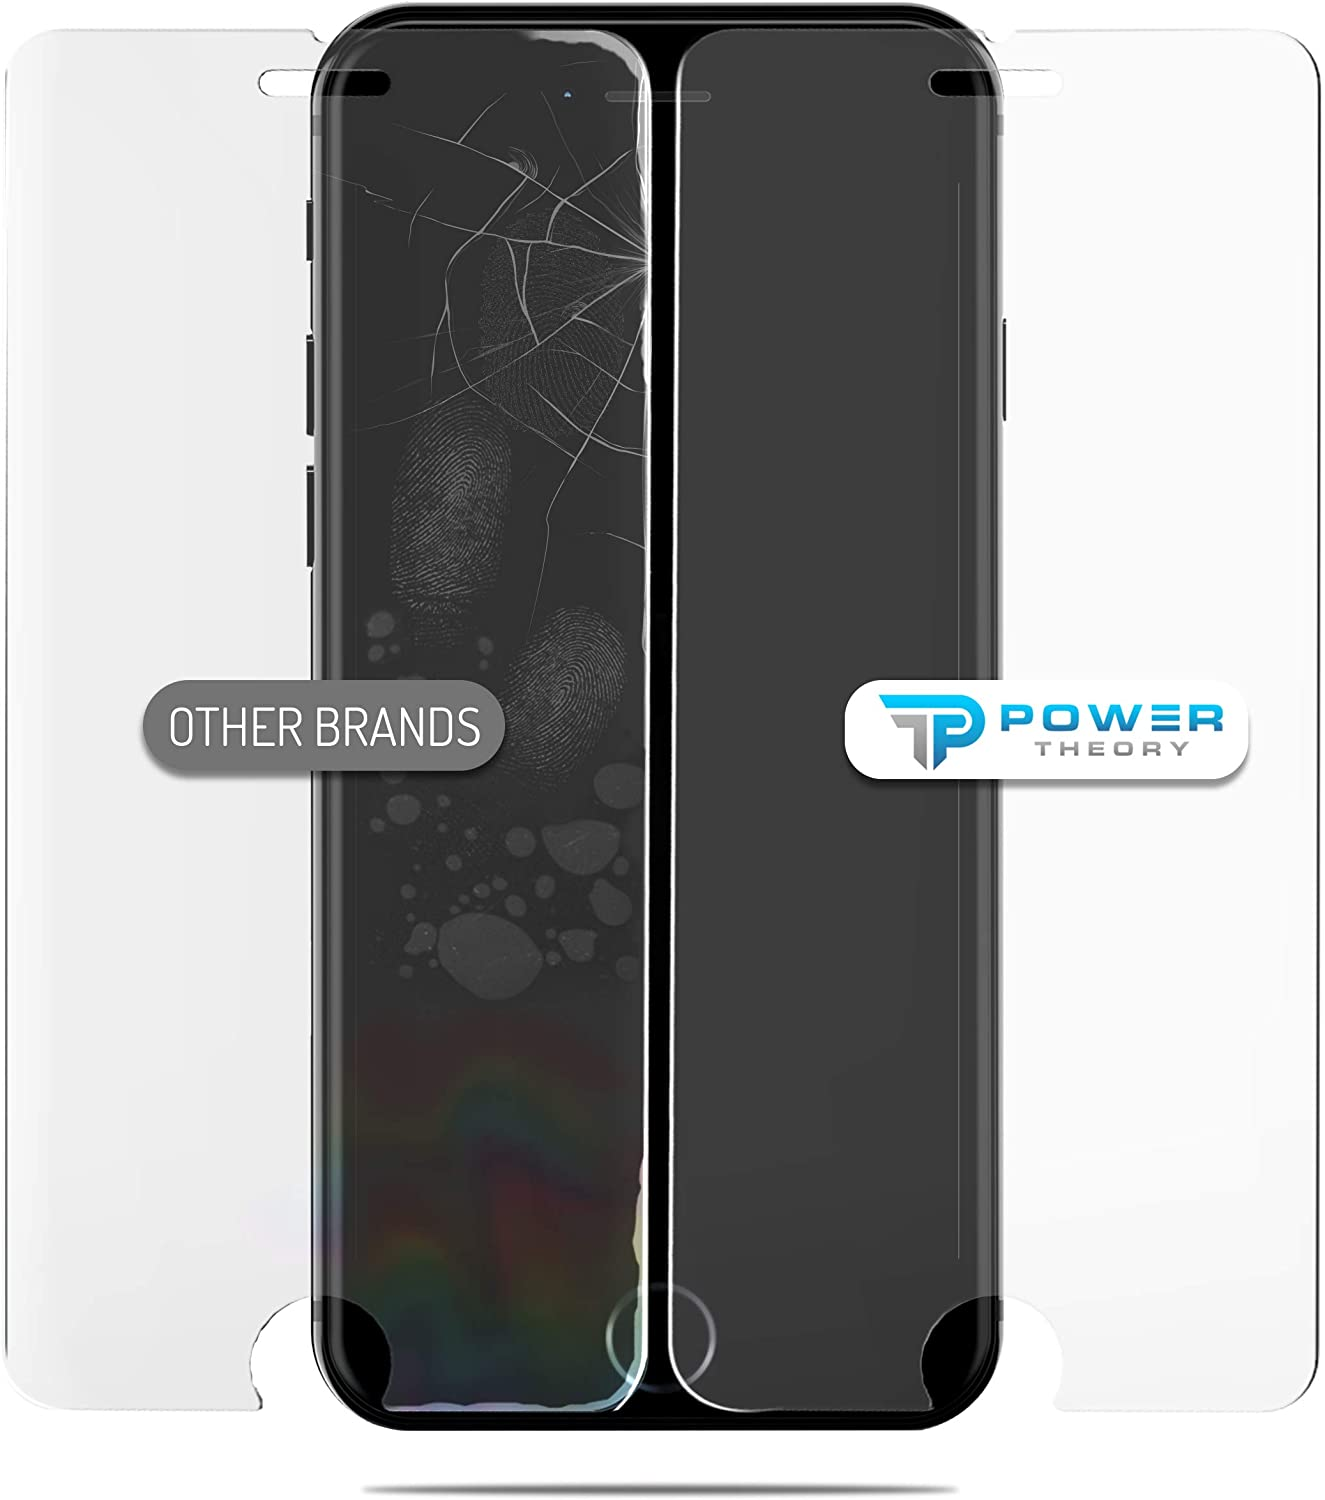 Power Theory iPhone SE 2020 Glass Screen Protector [2-Pack]